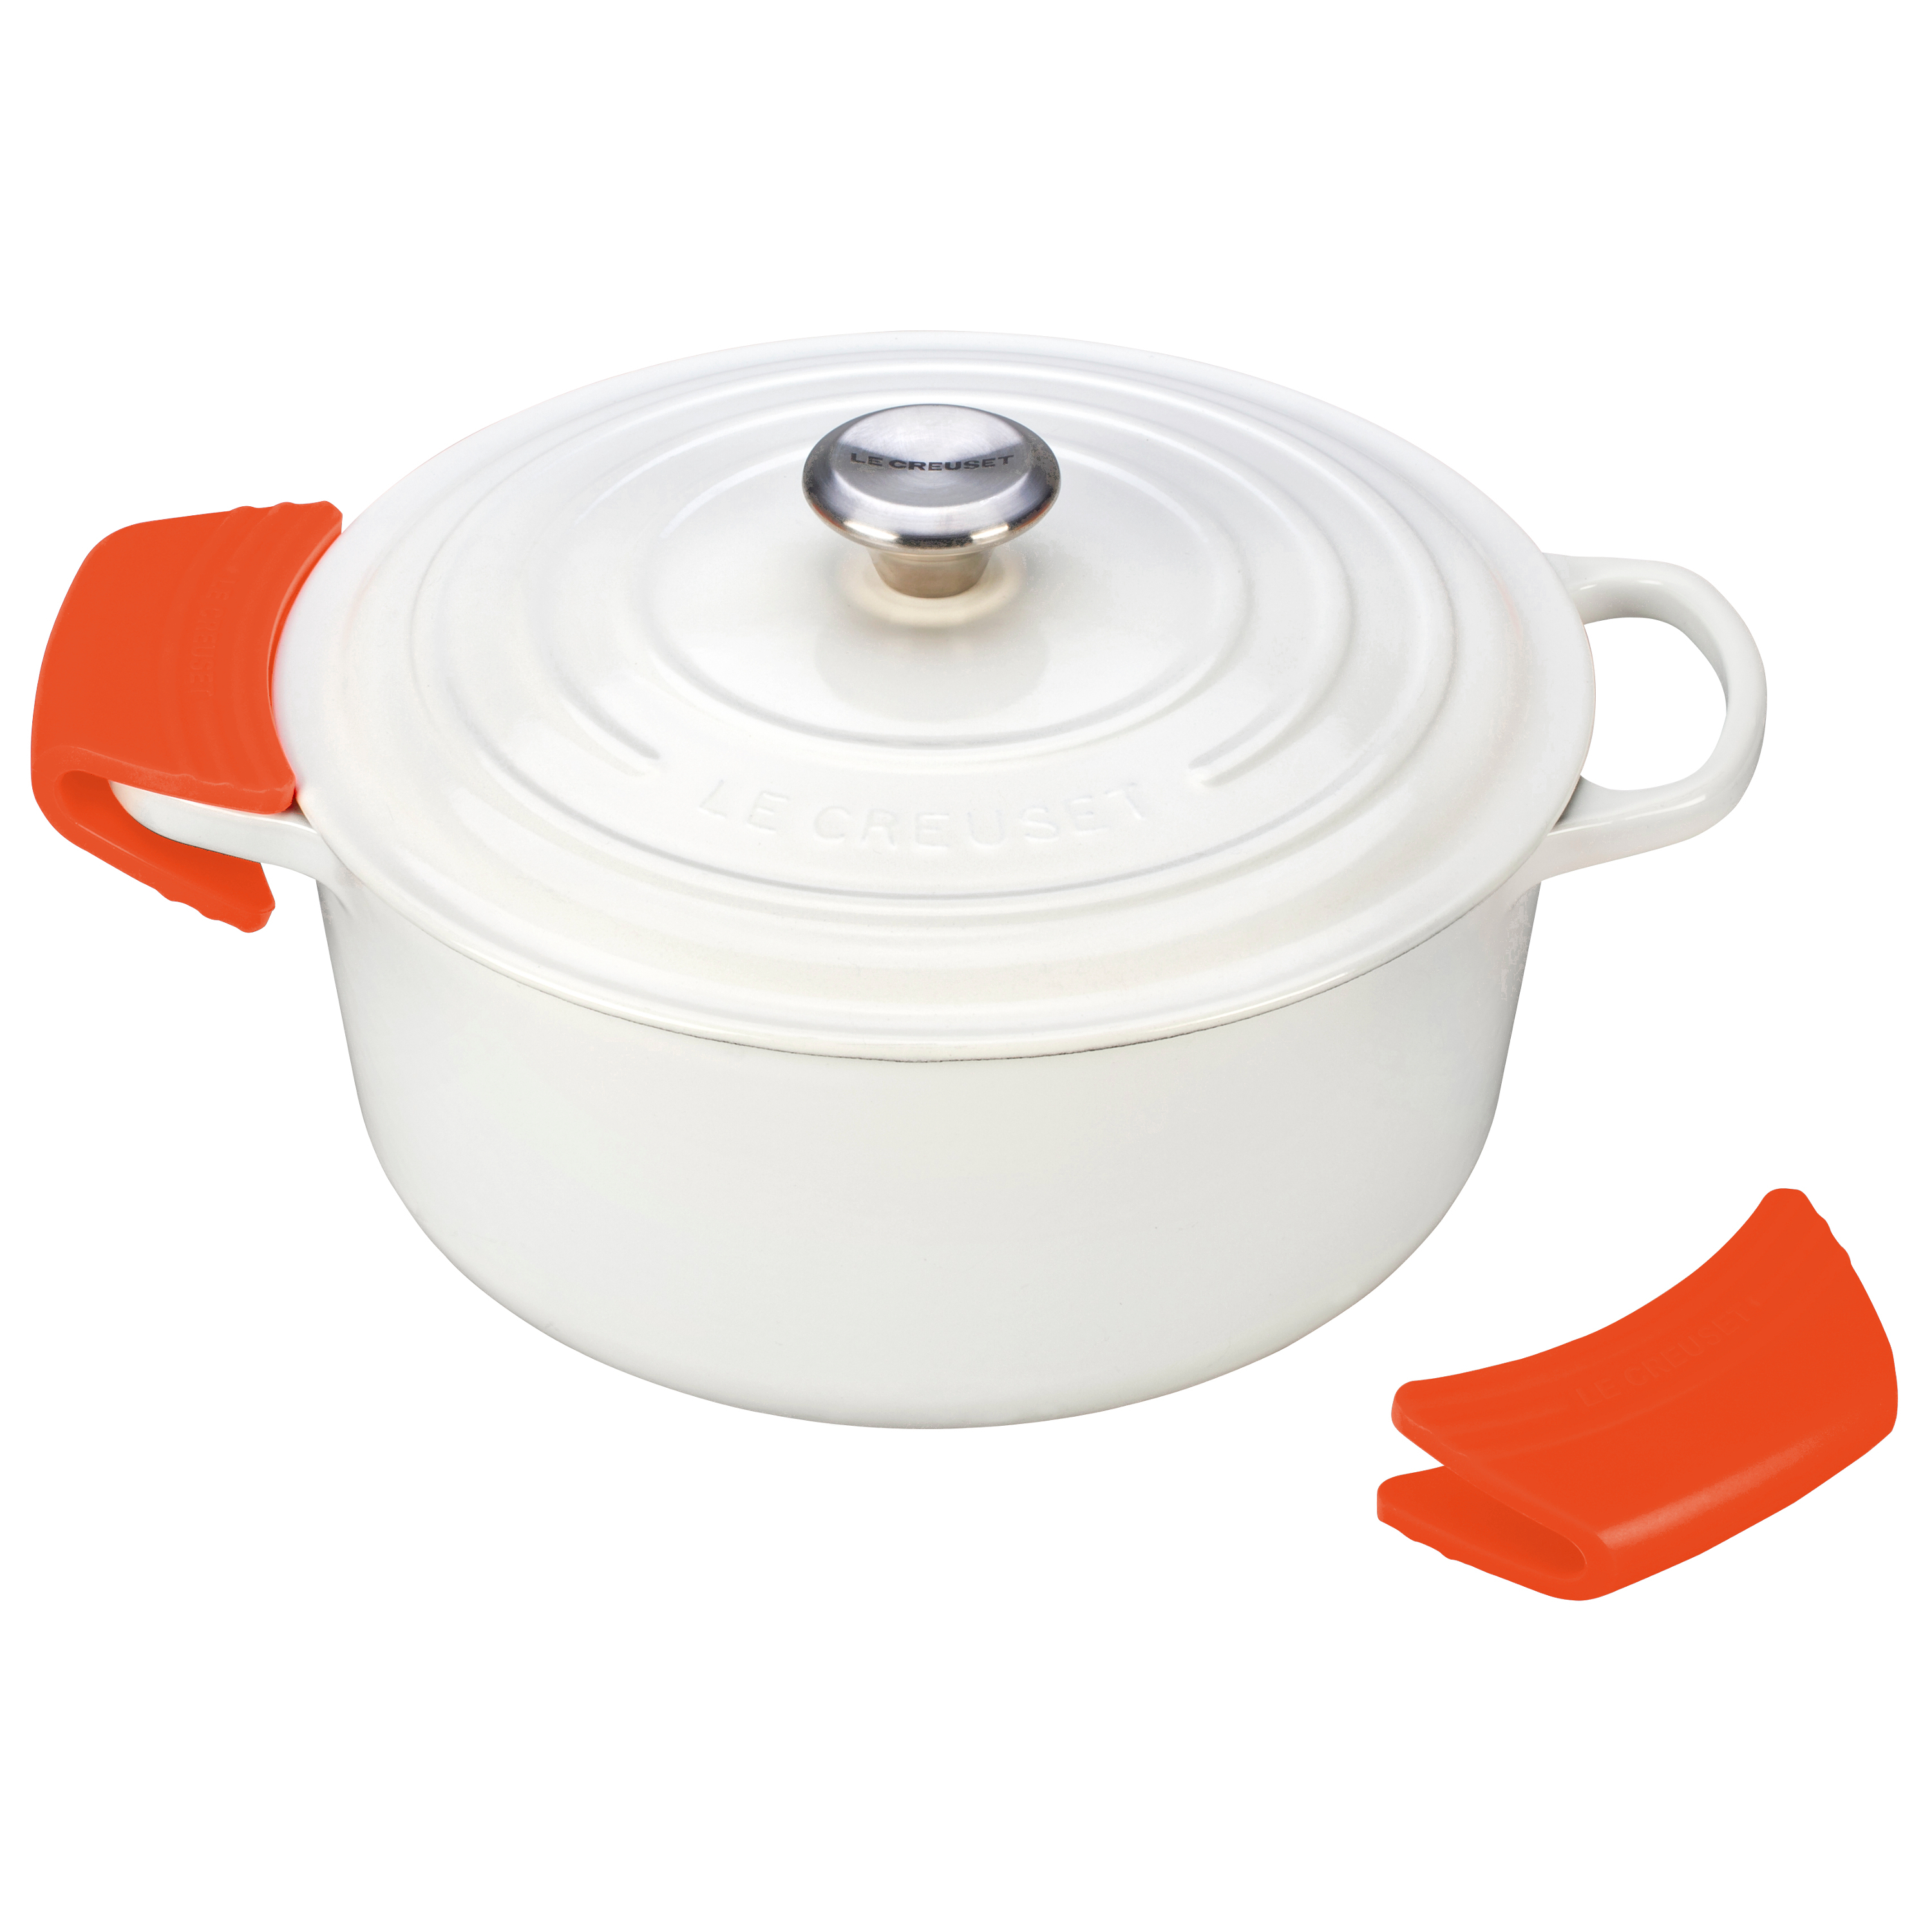 Le Creuset Flame Silicone Pot Grips, Set of 2